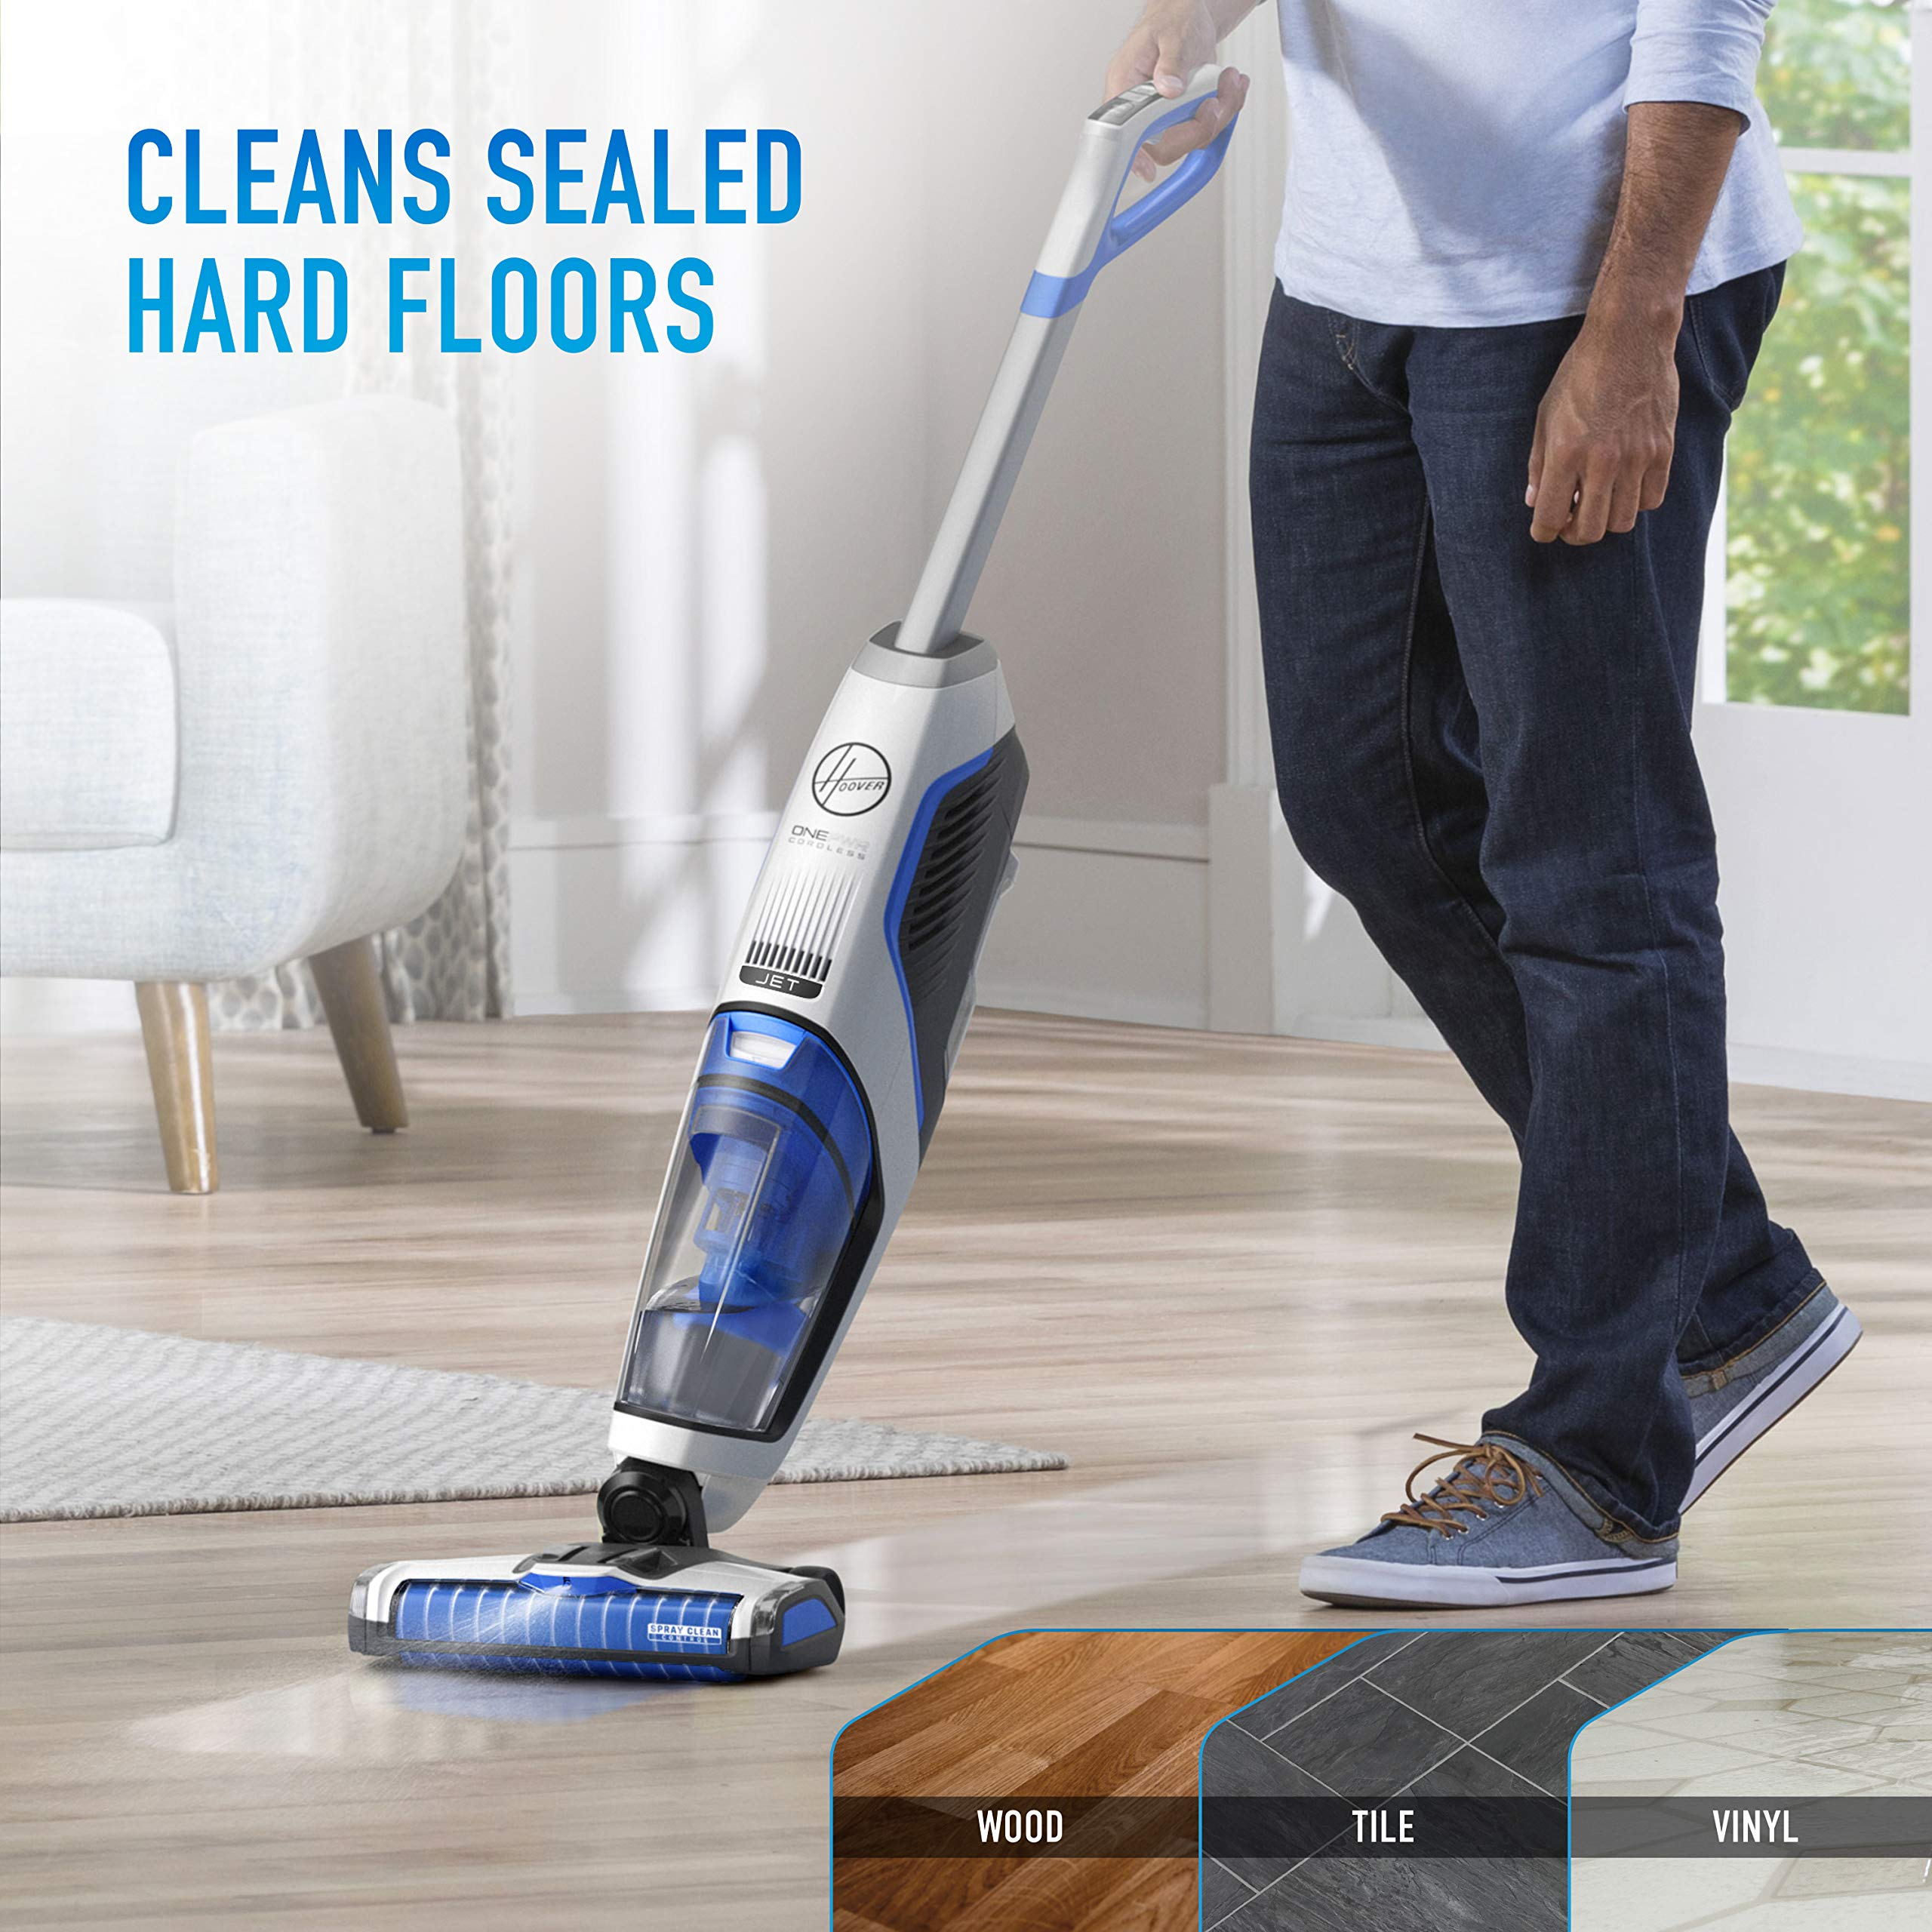 Hoover ONEPWR Cordless FloorMate Jet Hard Floor Cleaner, Wet Vacuum, BH55210, White by Hoover (Image #3)